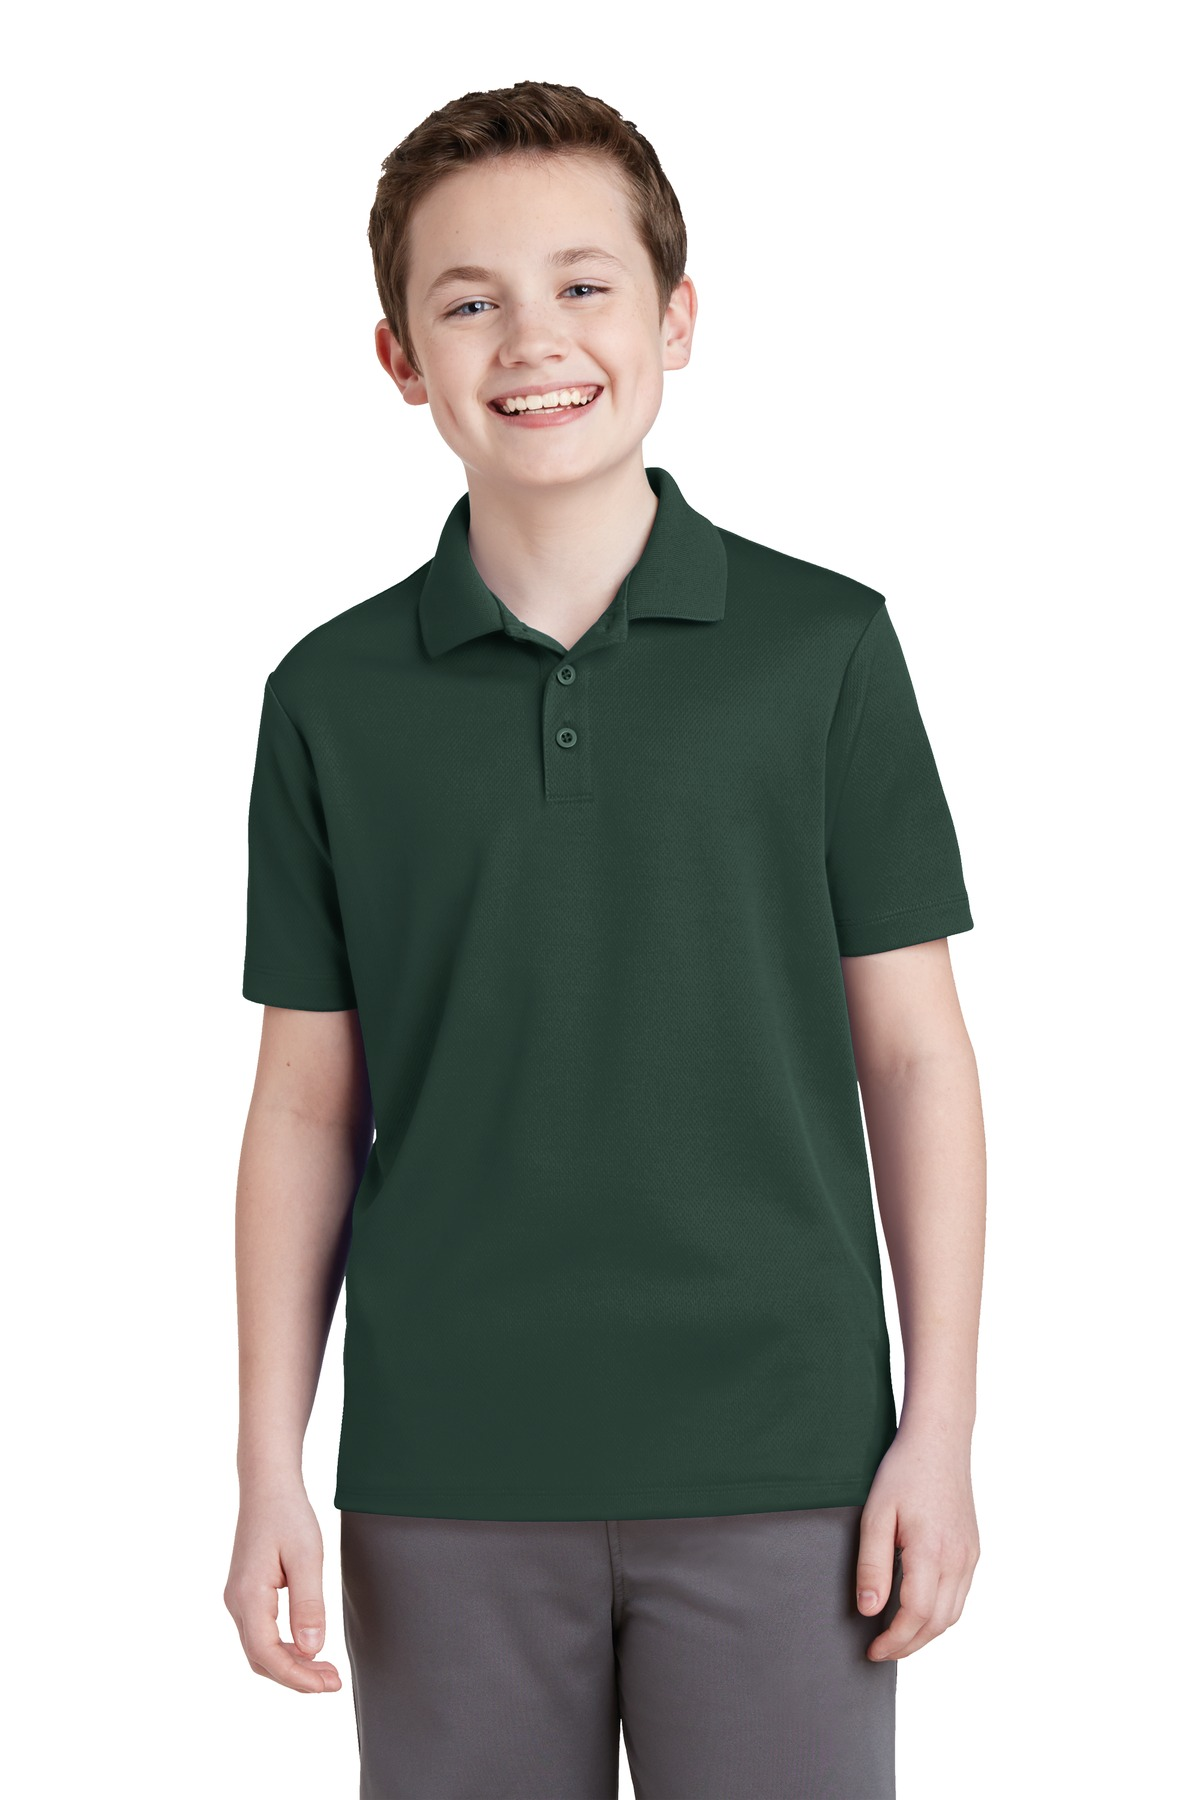 Sport-Tek ®  Youth PosiCharge ®  RacerMesh ®  Polo. YST640 - Dark Forest Green